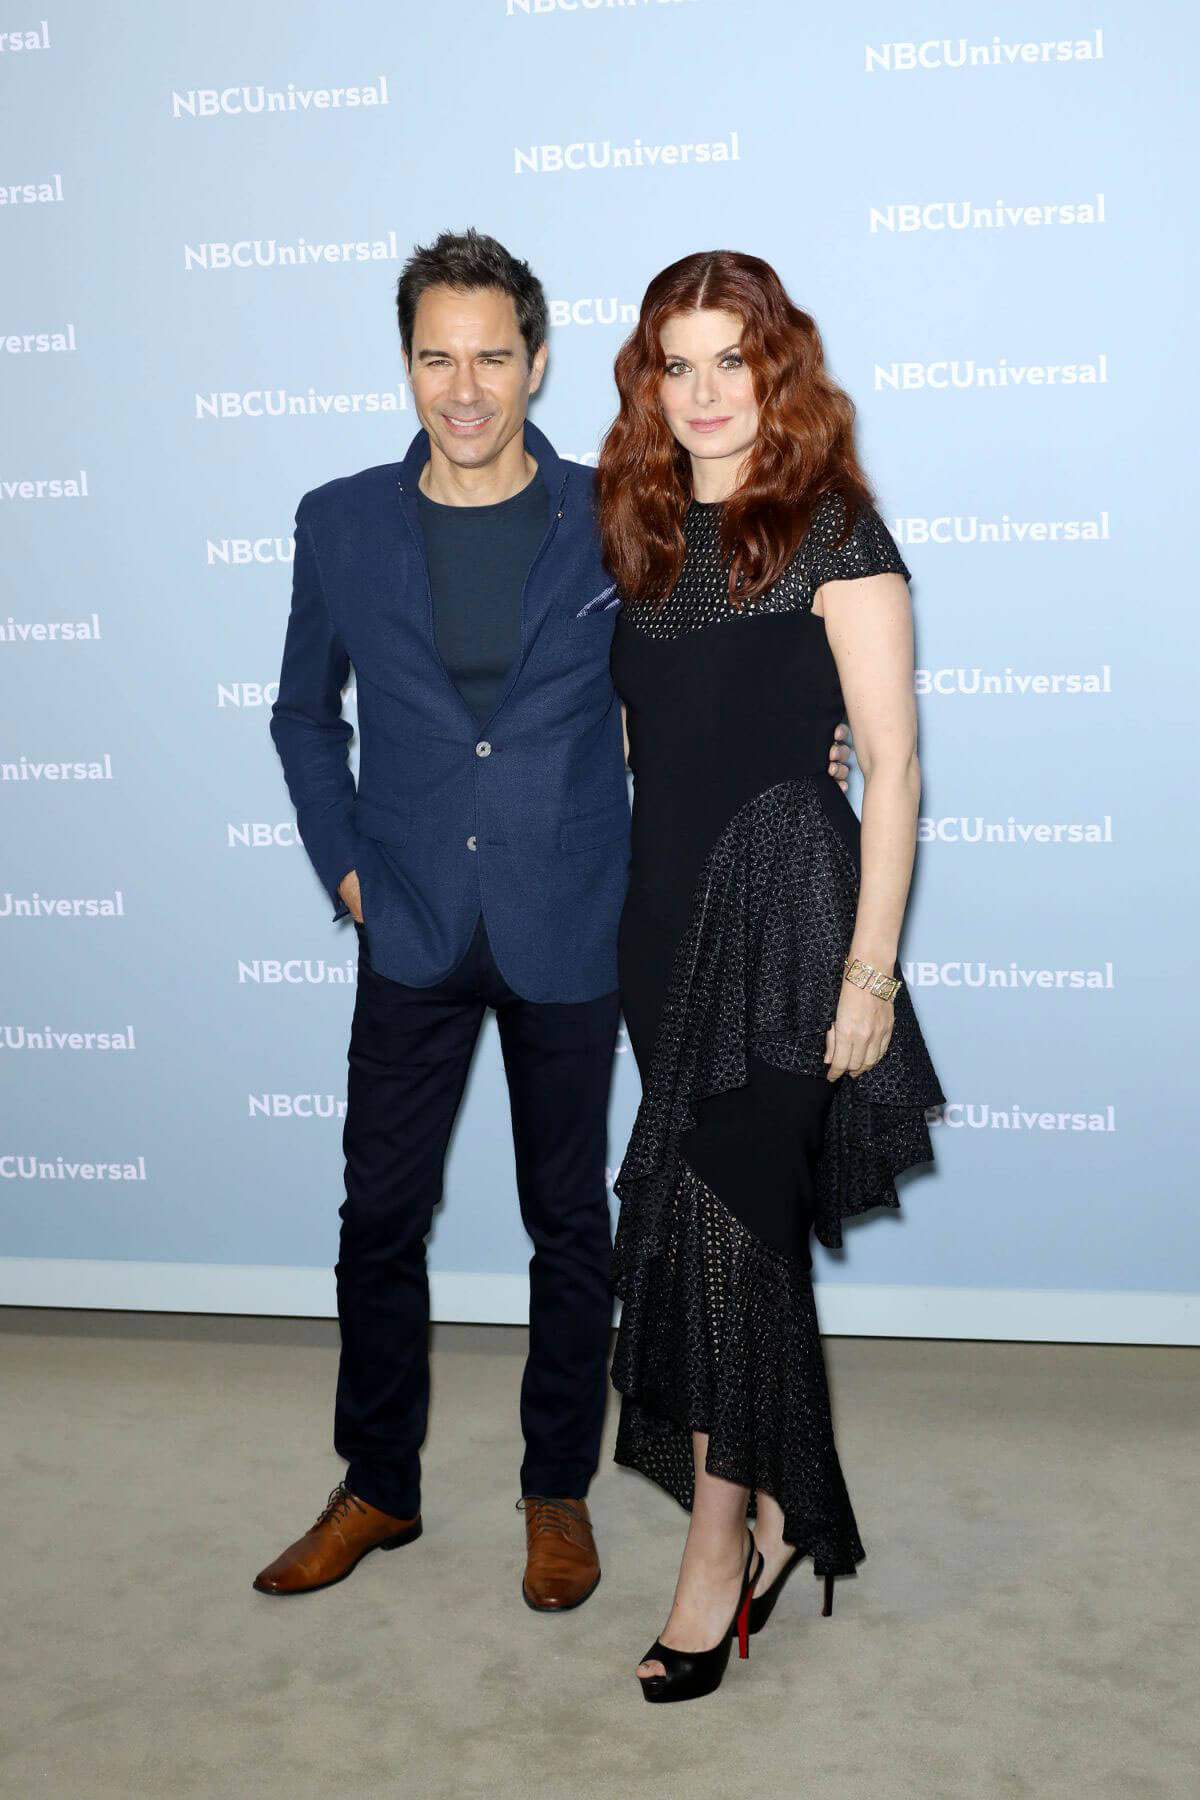 Debra Messing at NBCUniversal Upfront Presentation in New York 2018/05/14 1